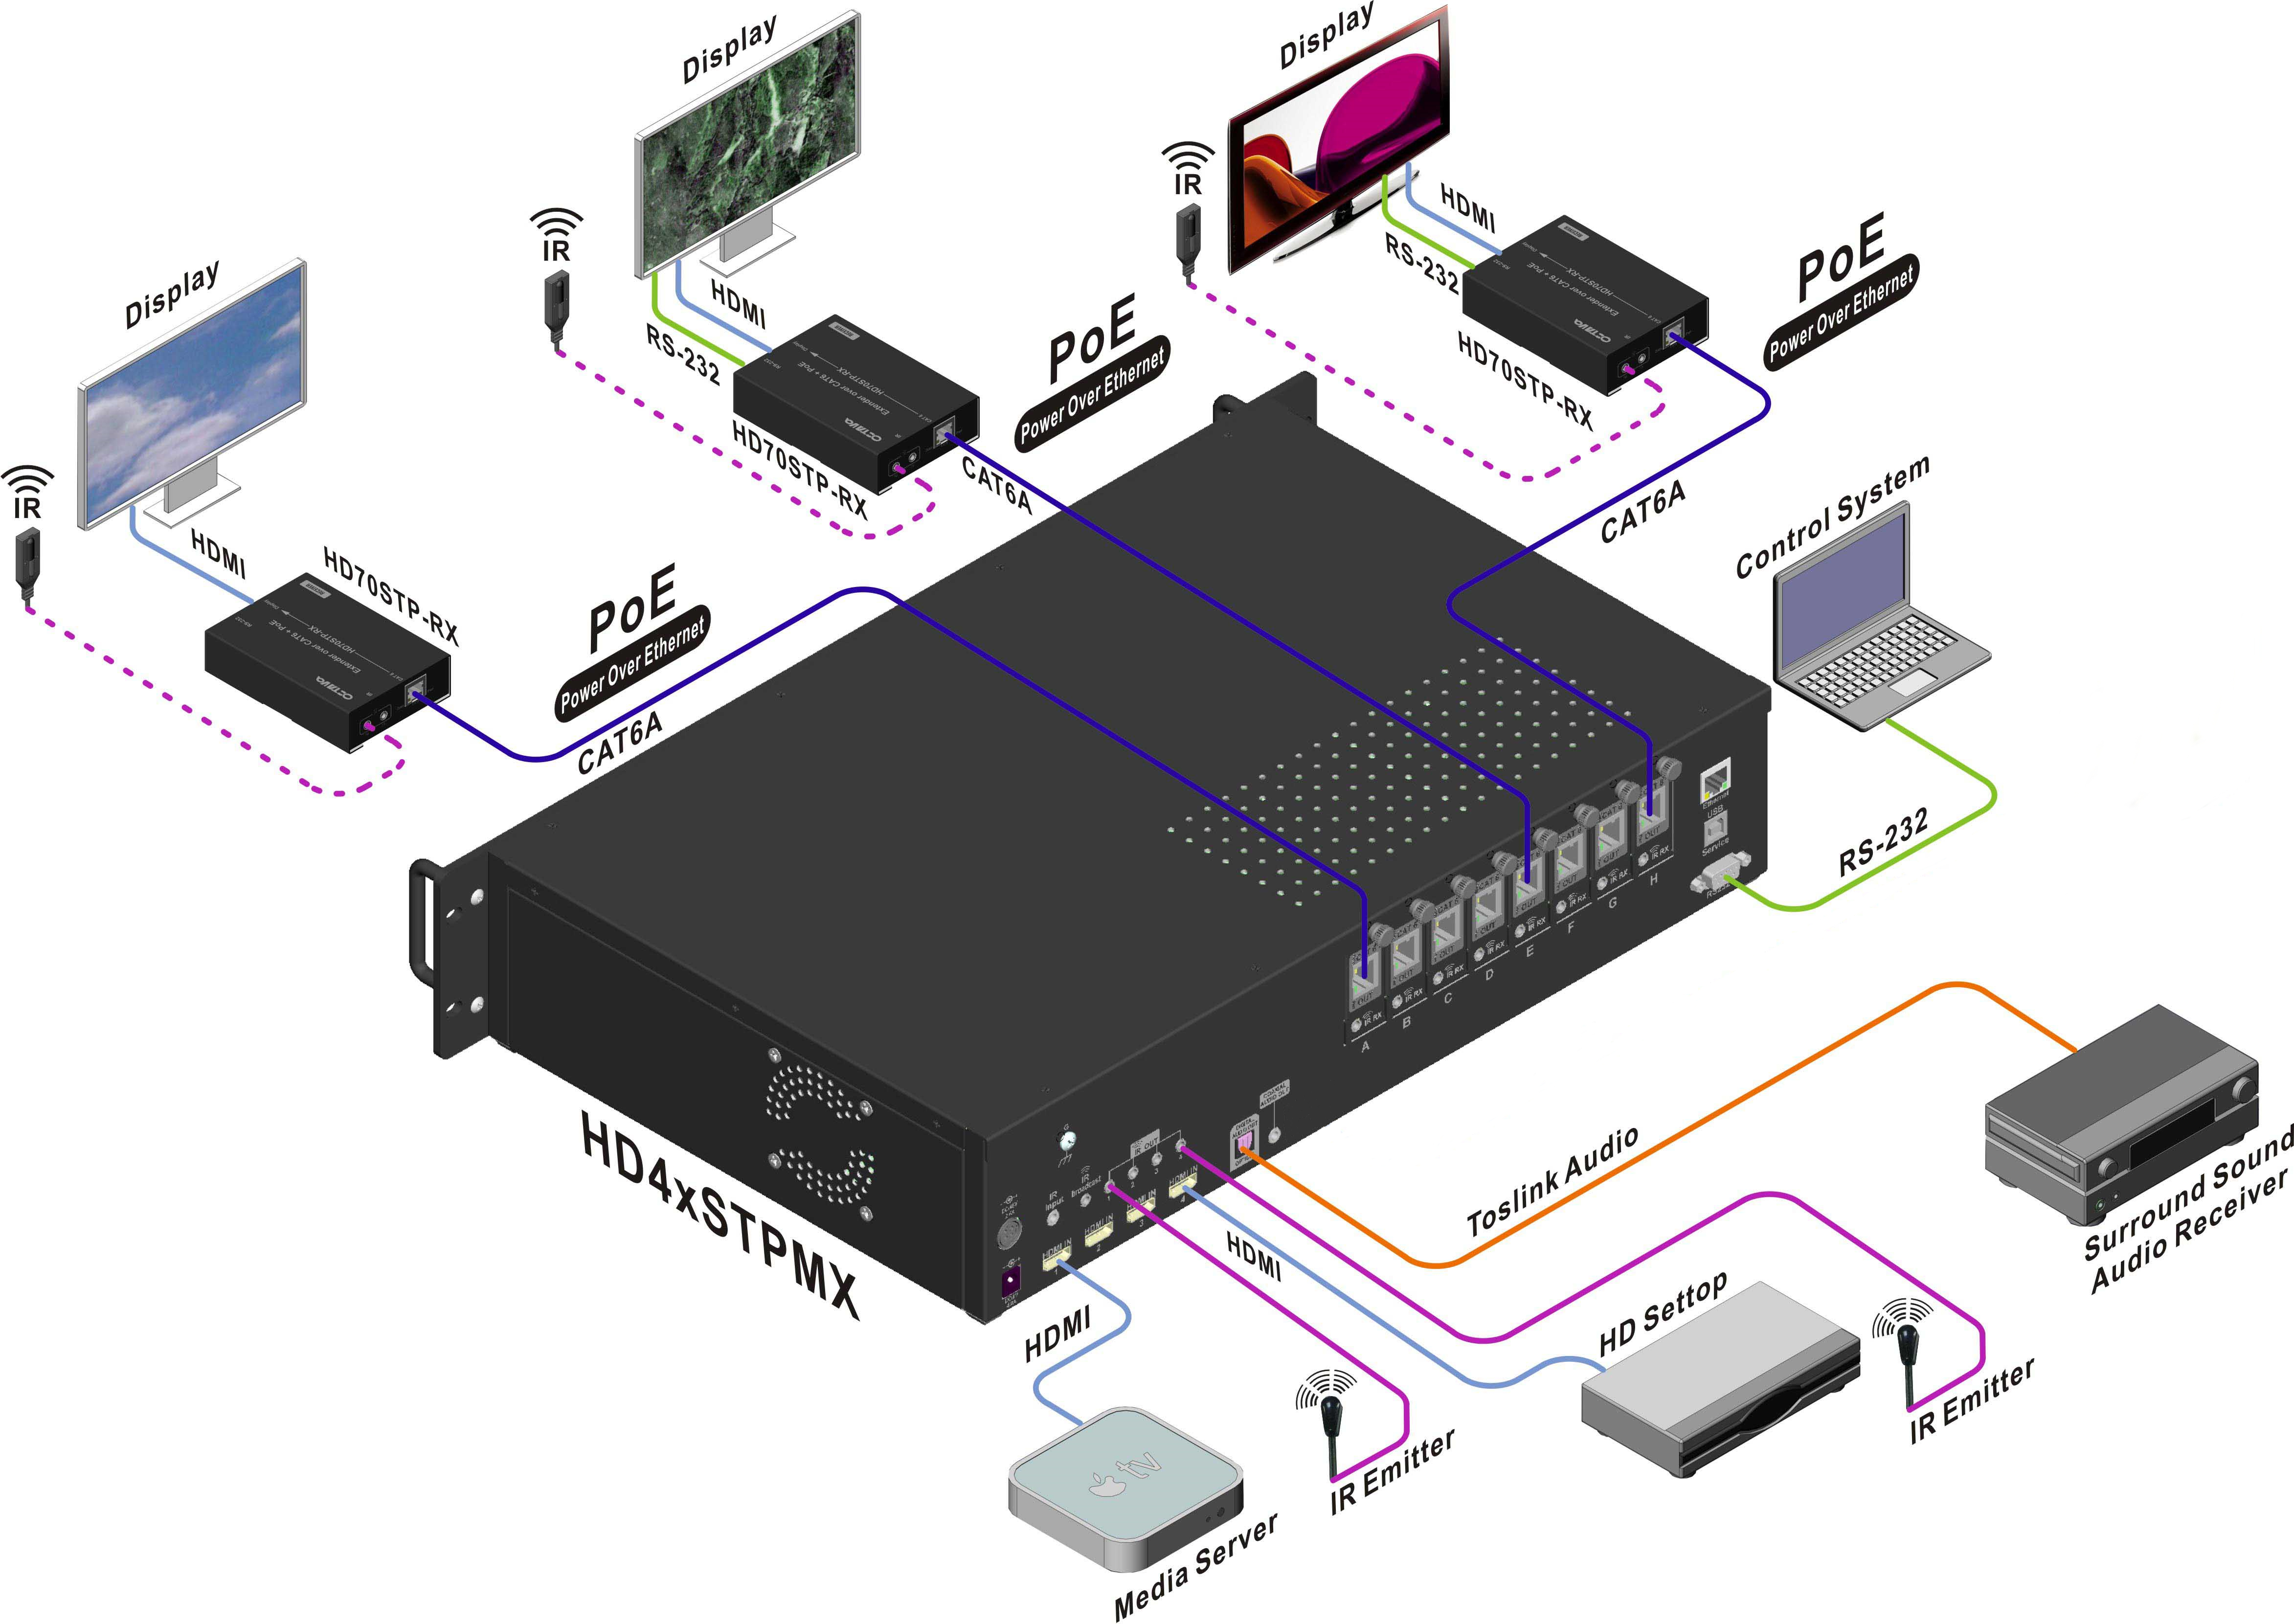 HDMI_Matrix_HDbaseT_over_1_cable_200ft_HD4xSTPMX_application.png